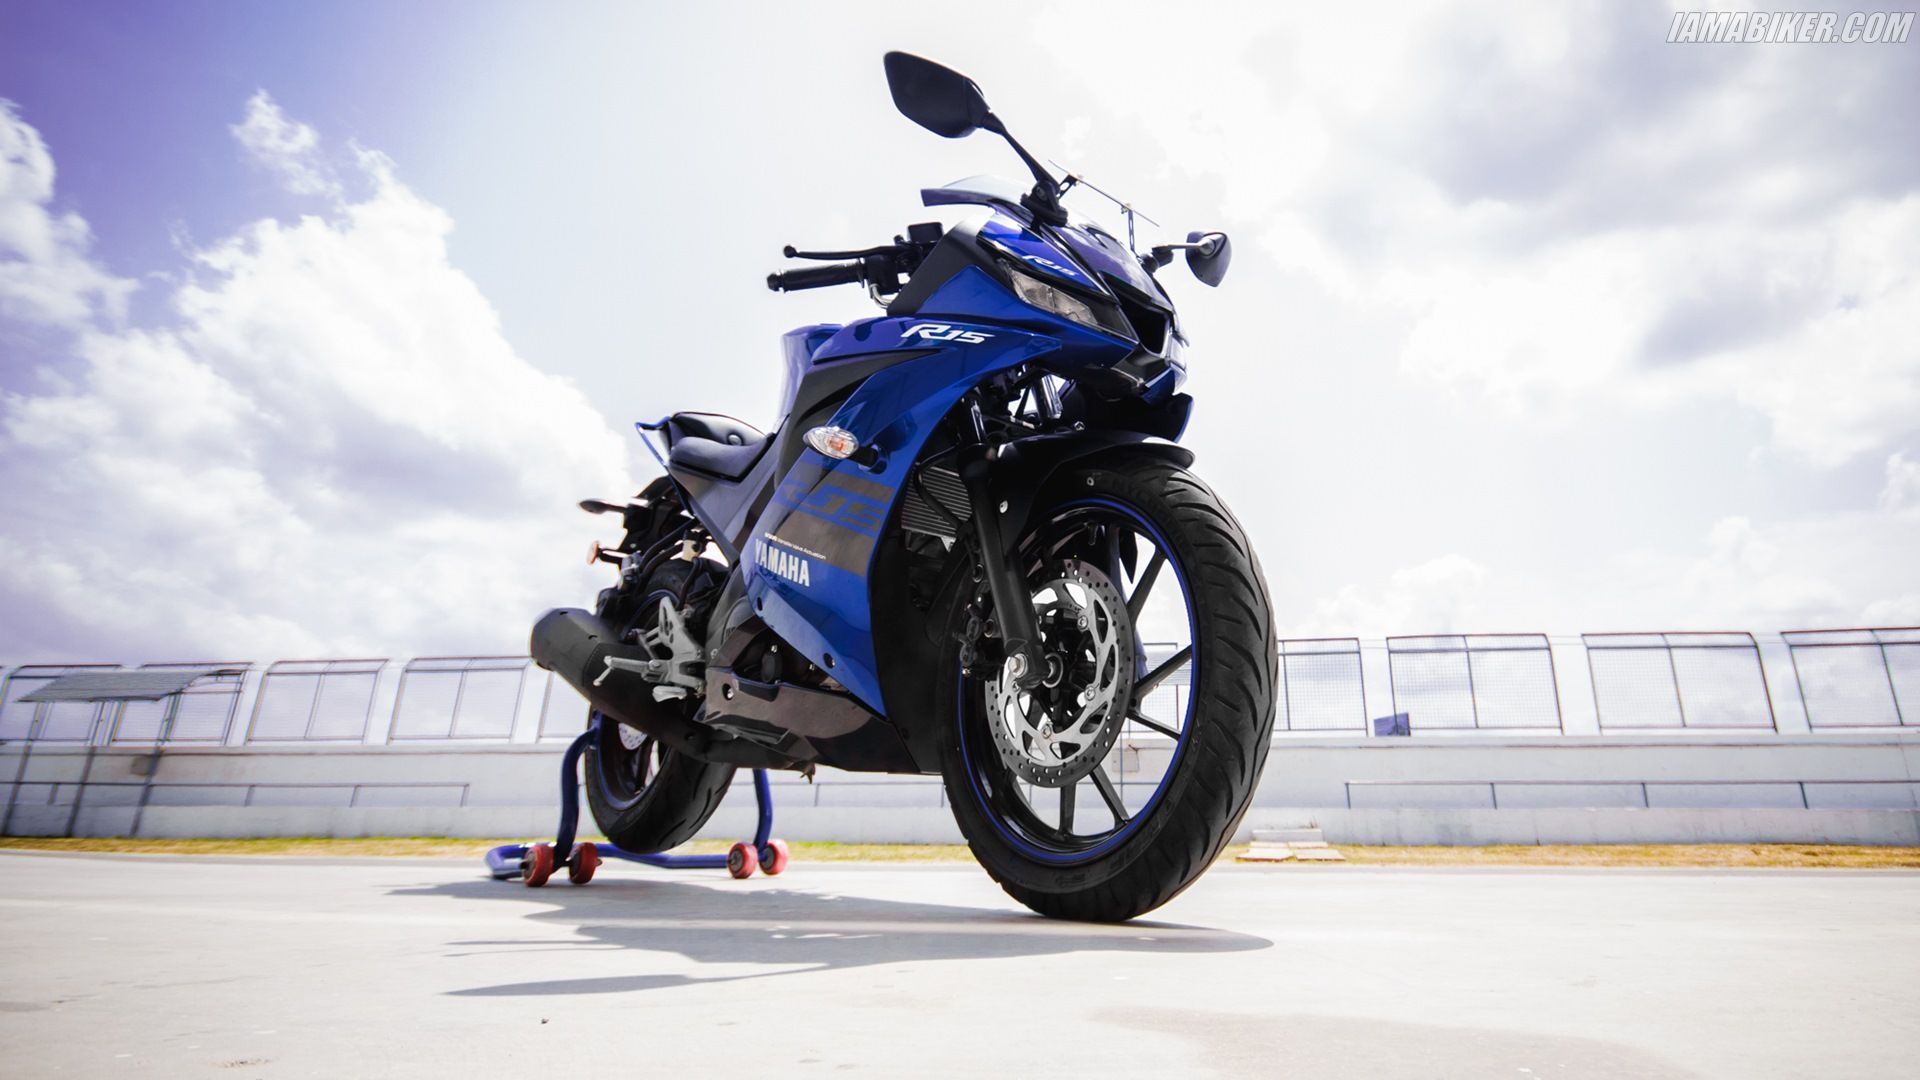 Yamaha R15 V3 Hd Wallpapers Hd Wallpaper Yamaha Wallpaper